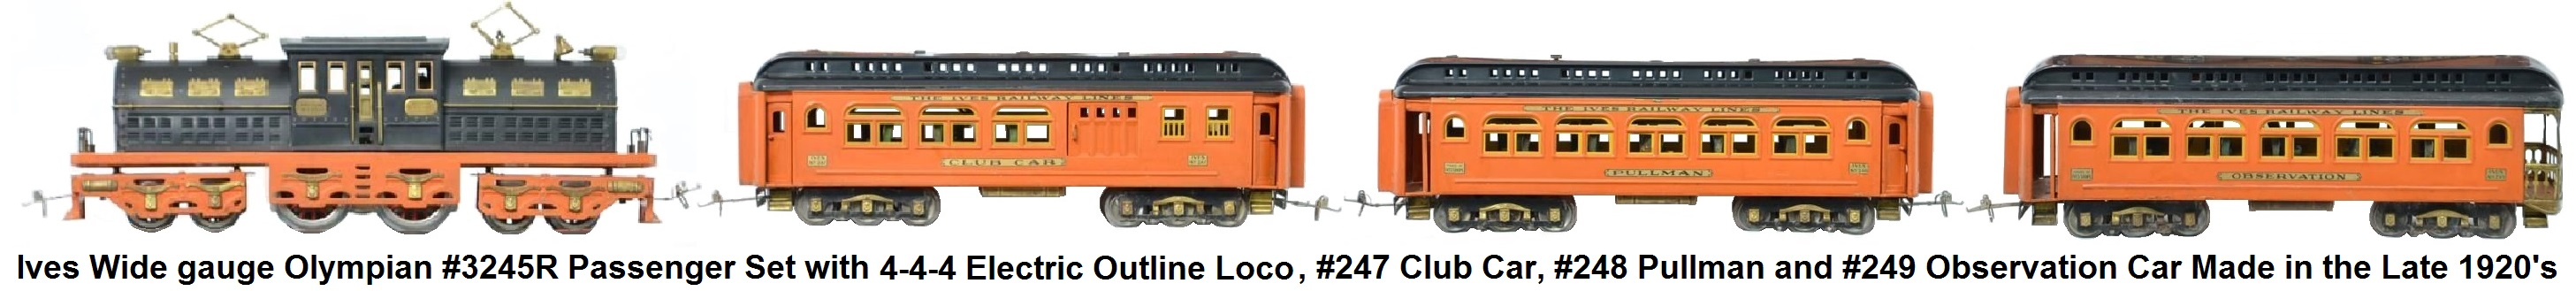 Ives Trains American Flyer Locomotive Wiring Diagrams Wide Gauge Olympian 3245r Passenger Set With 4 Electric Outline